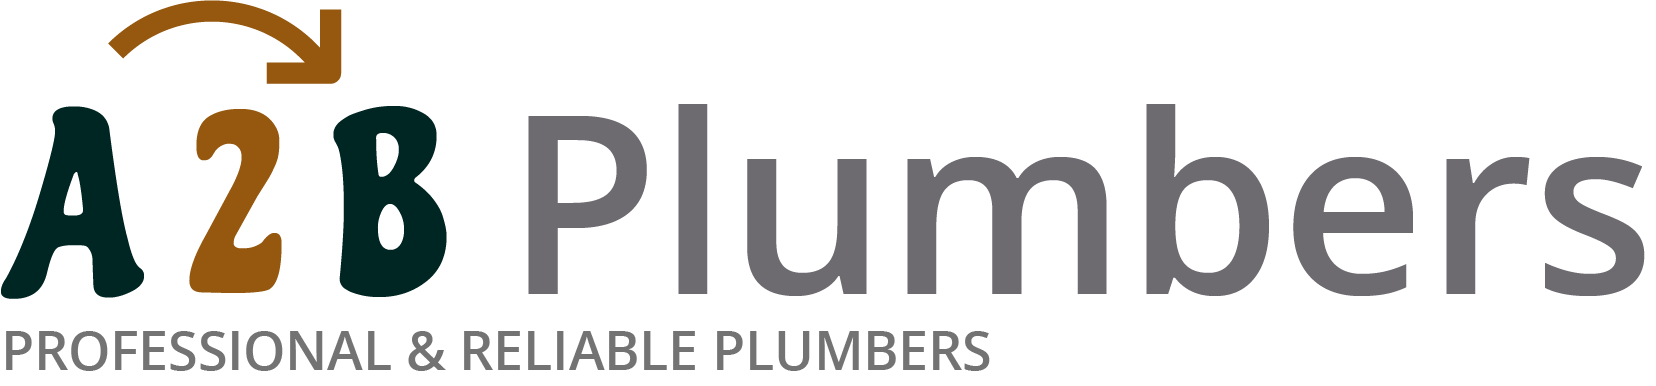 If you need a boiler installed, a radiator repaired or a leaking tap fixed, call us now - we provide services for properties in Ripon and the local area.